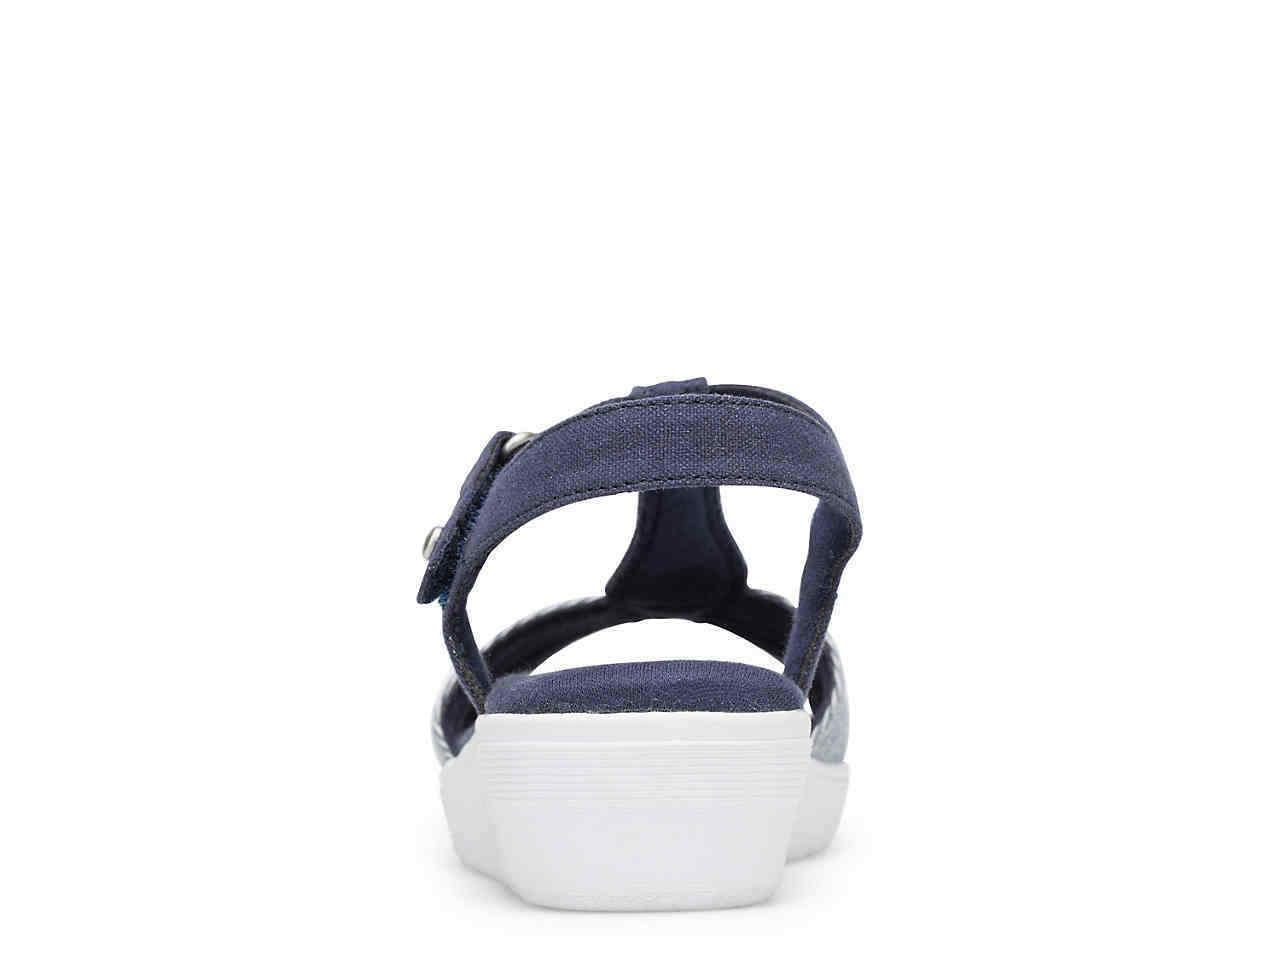 Grasshoppers Wedge Sandals Blue/White Women's Comfort Shoes